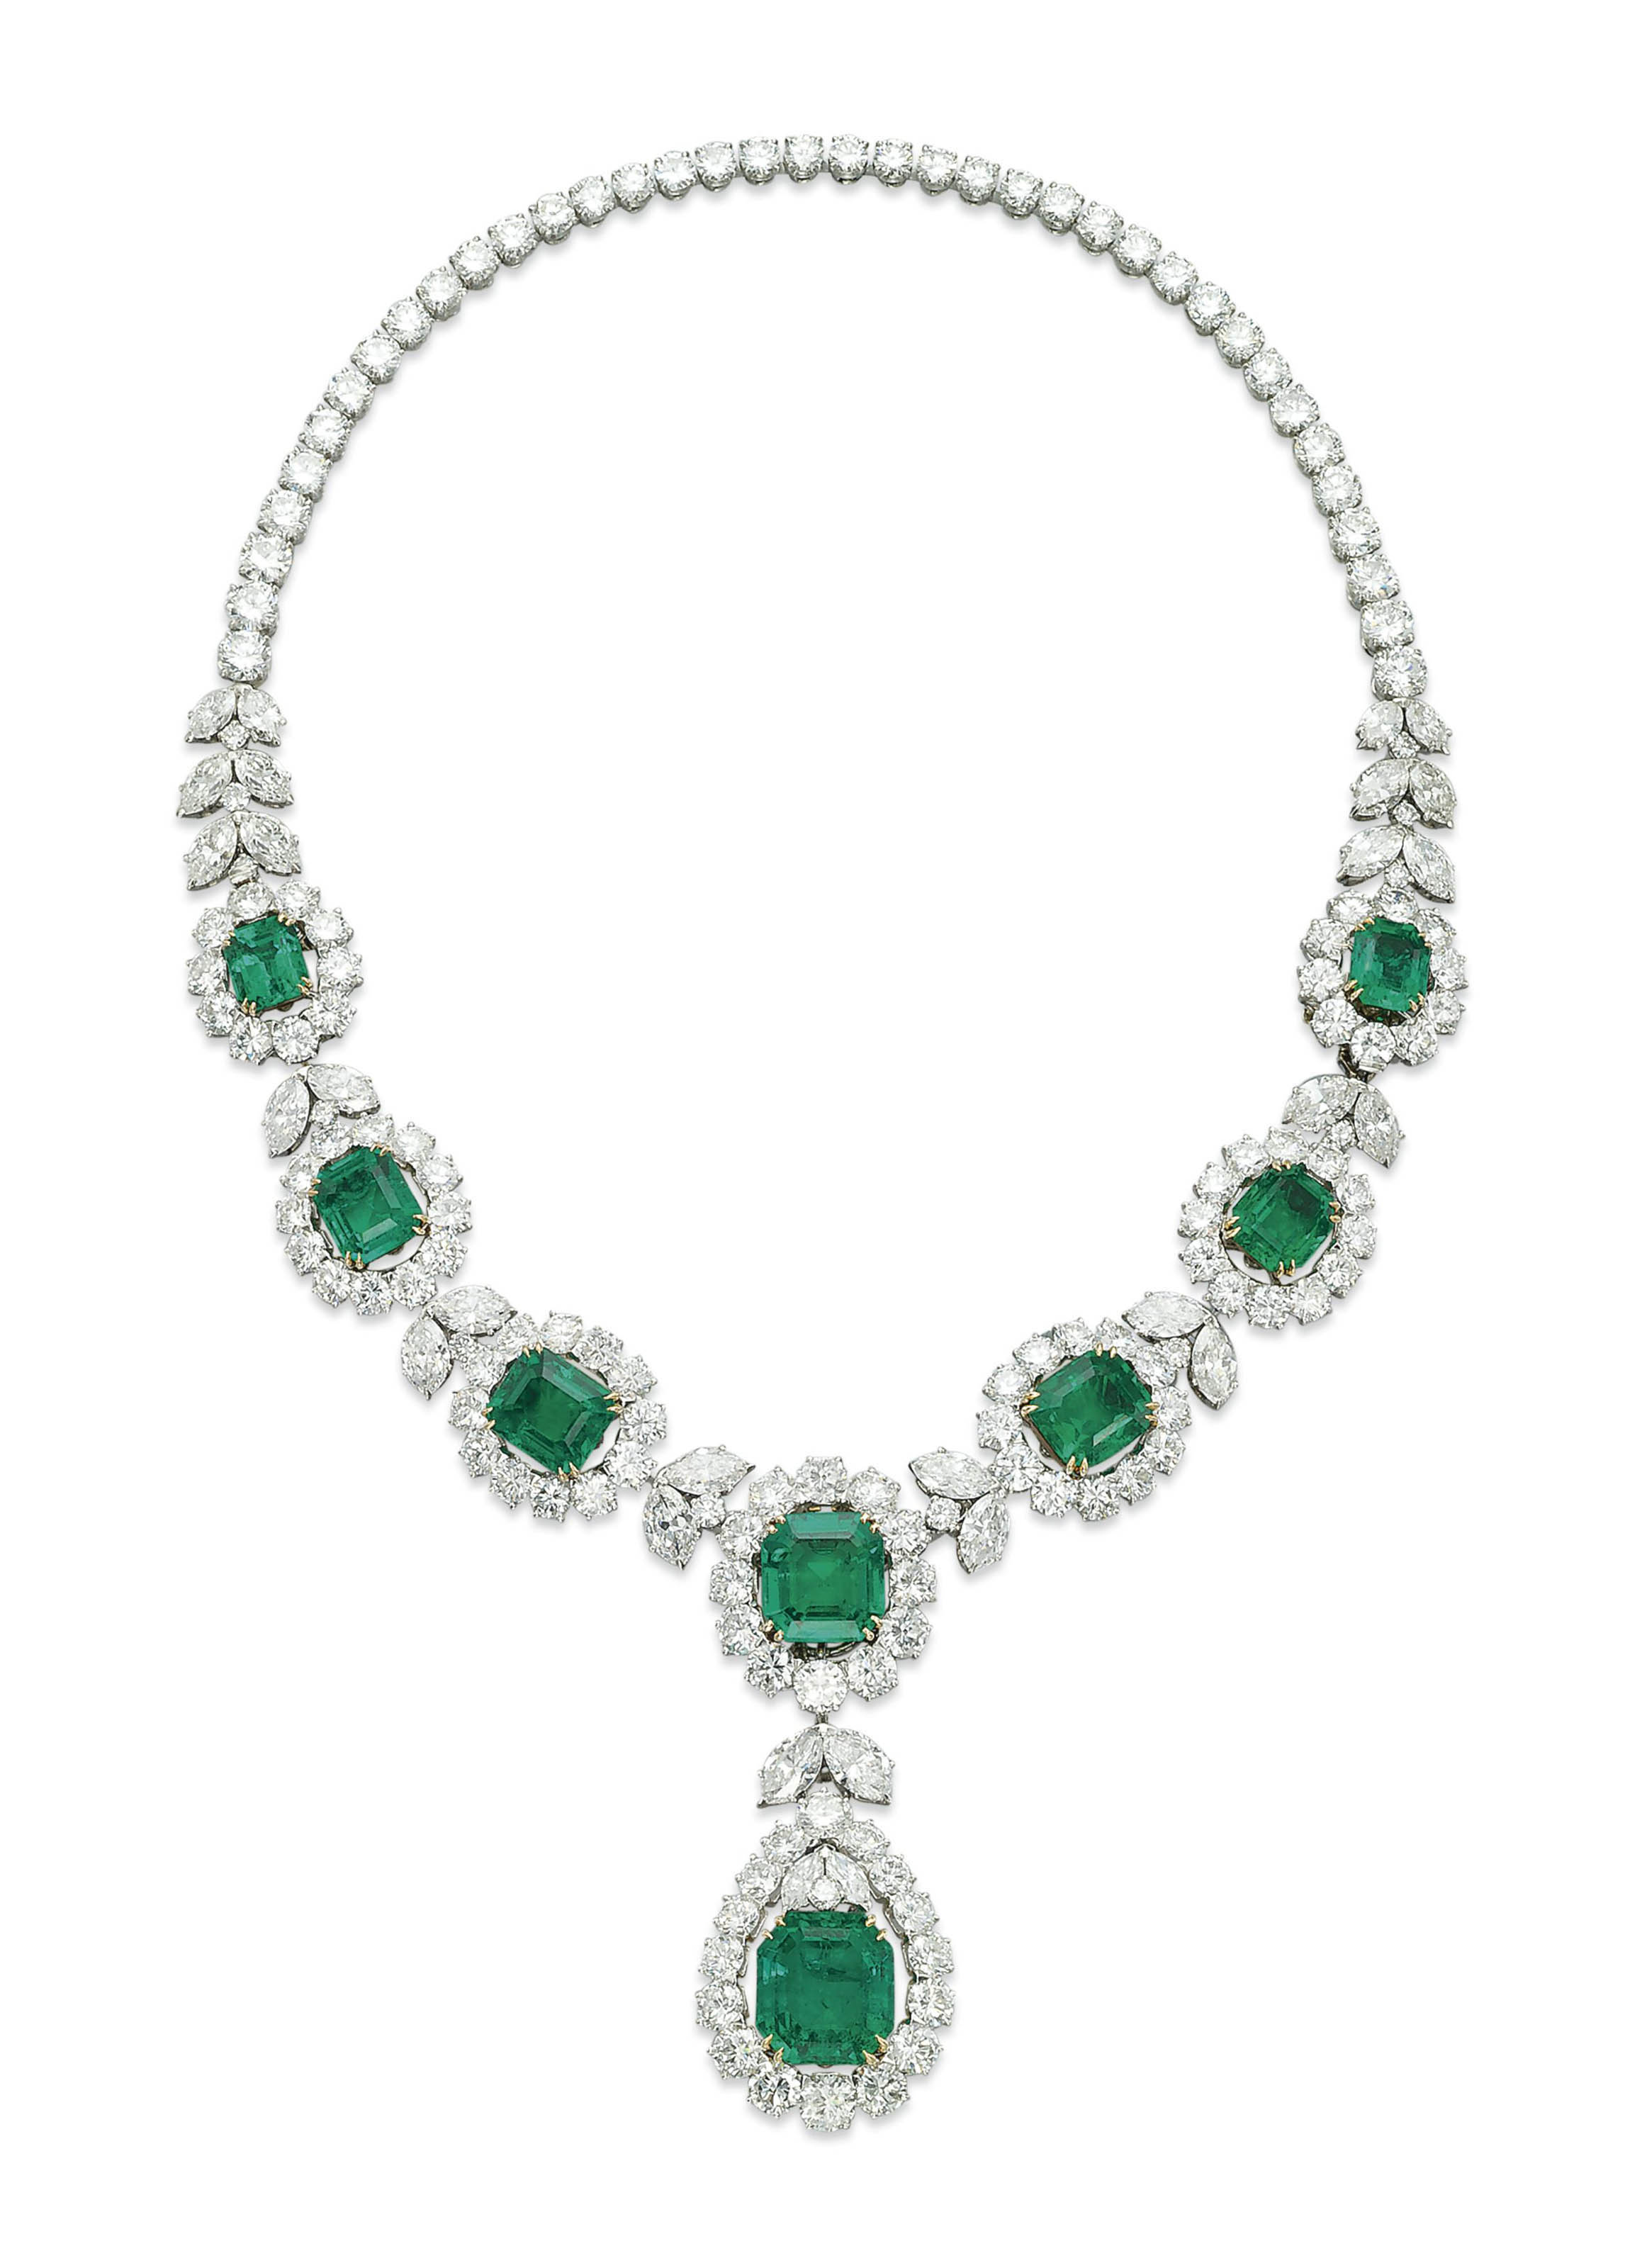 A FINE EMERALD AND DIAMOND NECKLACE, BY VAN CLEEF & ARPELS